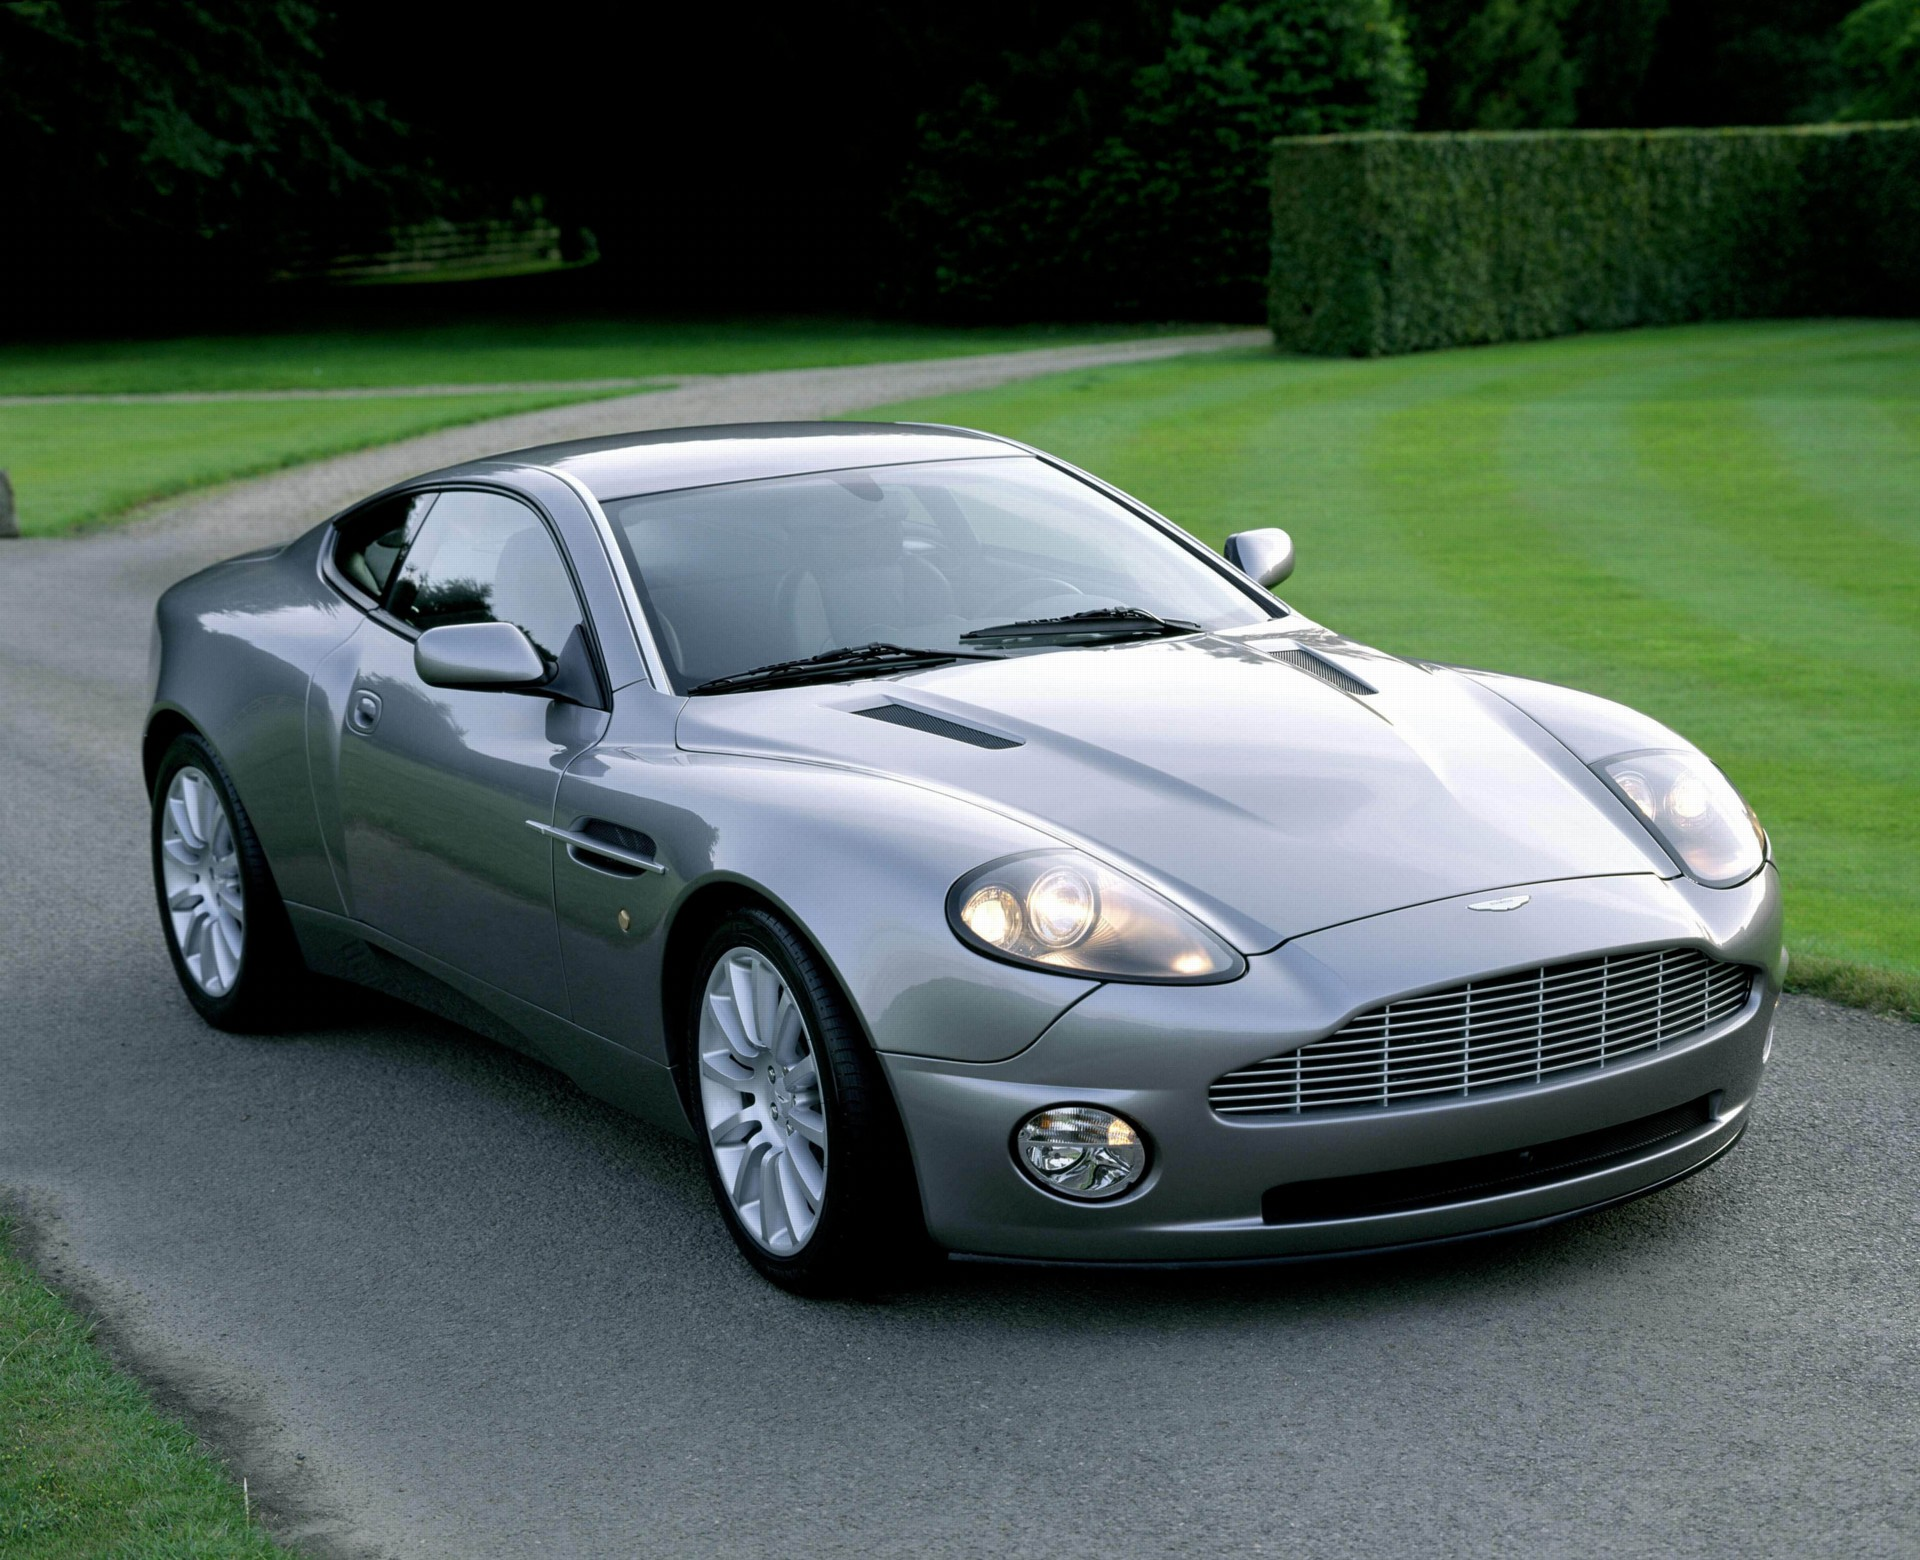 2007 Aston Martin Vanquish S Pictures, History, Value